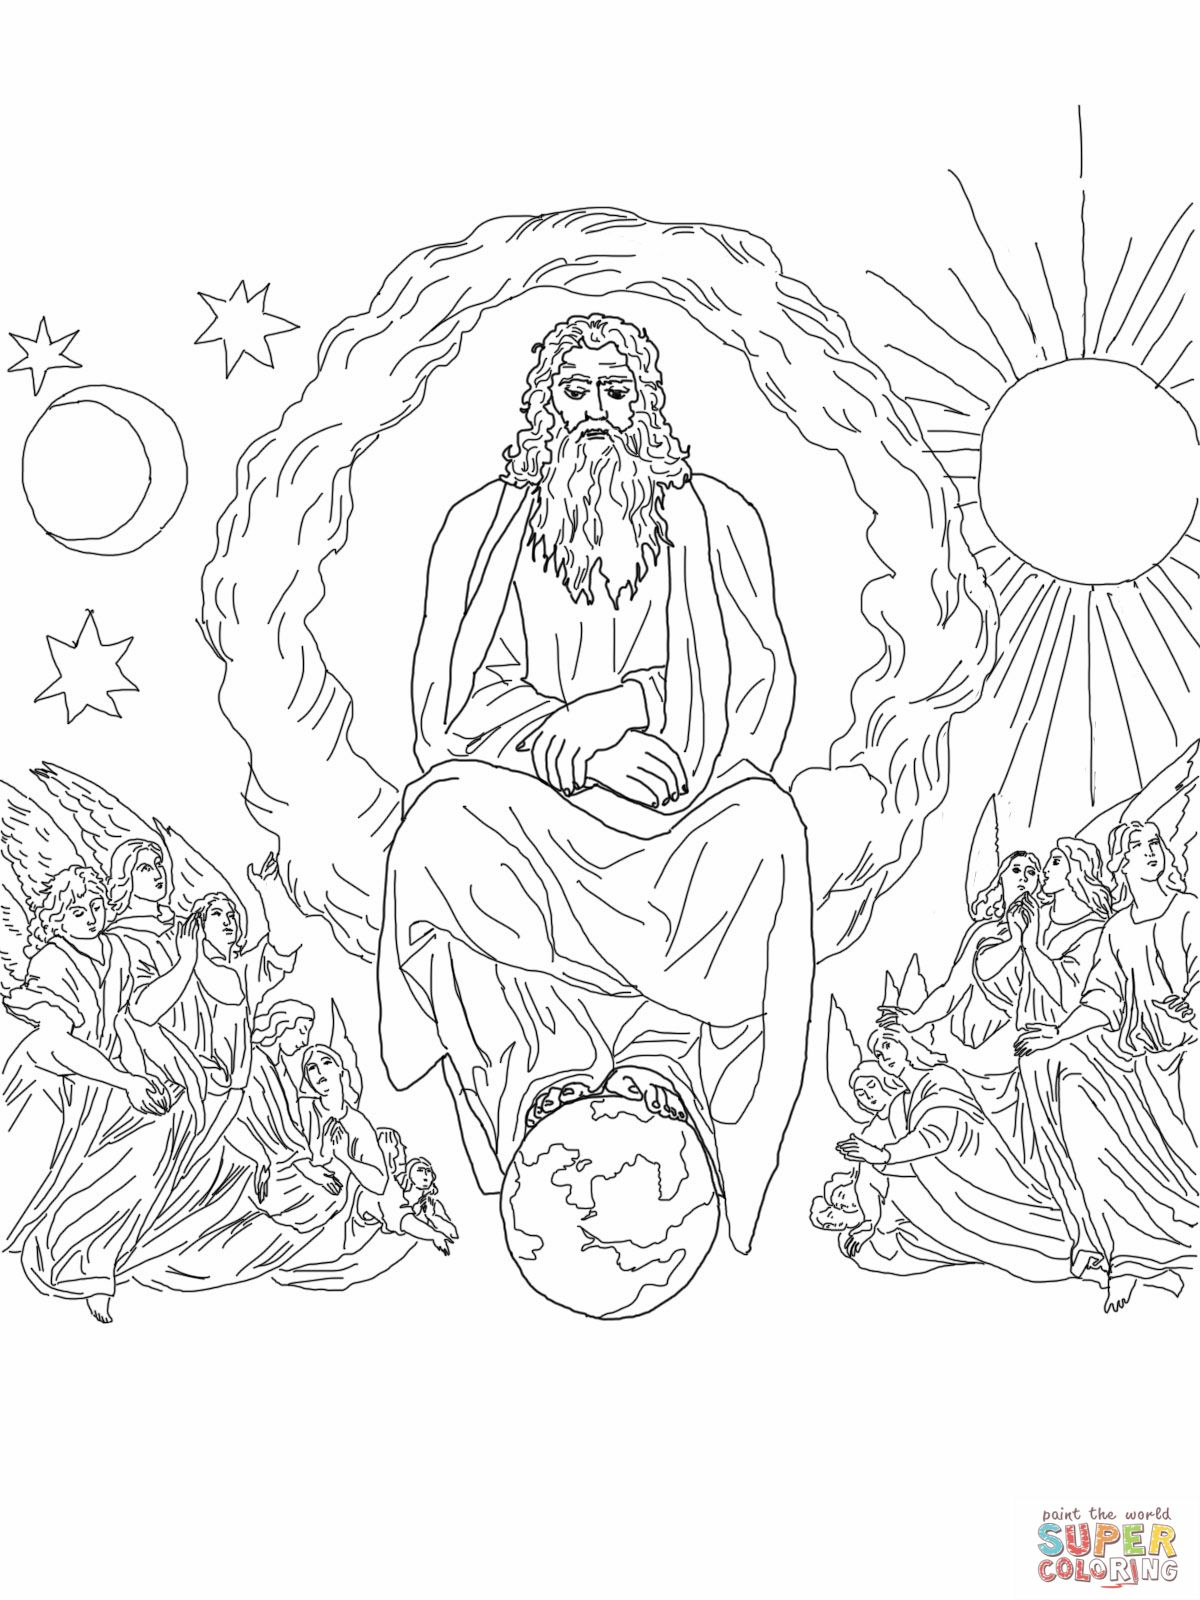 Creation God Created The World In 7 Days Bible Coloring Pages